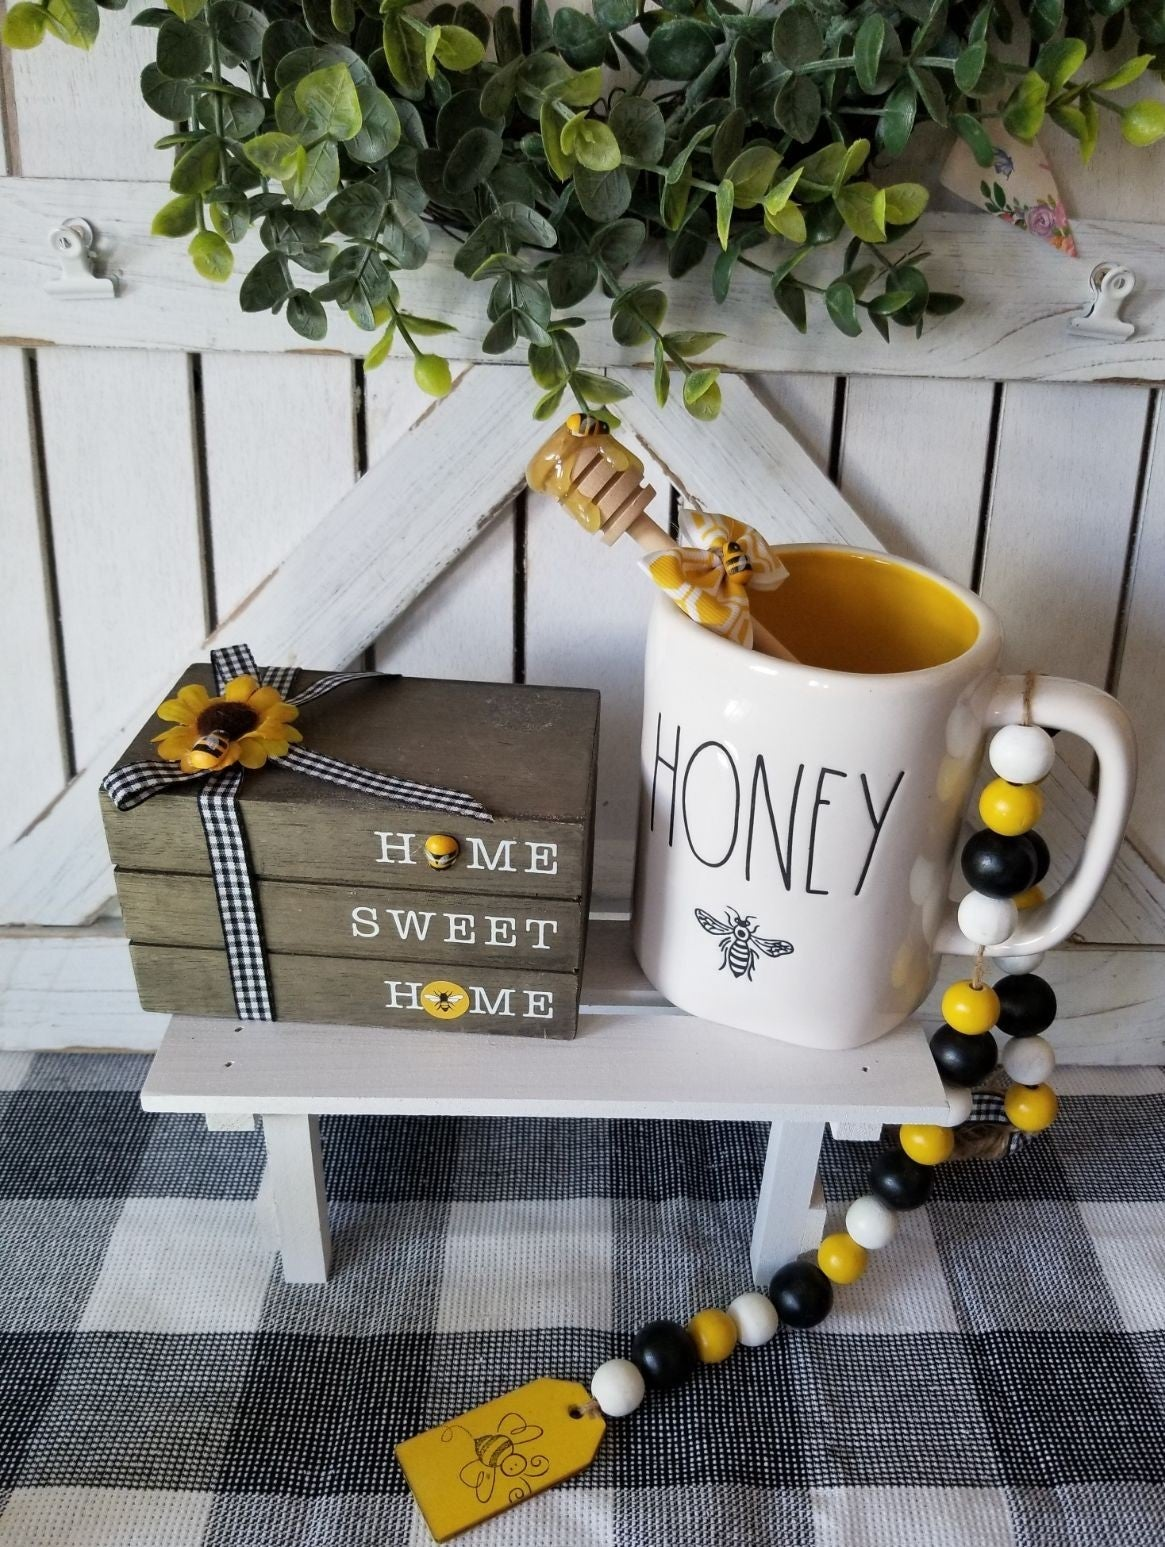 Farmhouse Bee home sweet home book stack